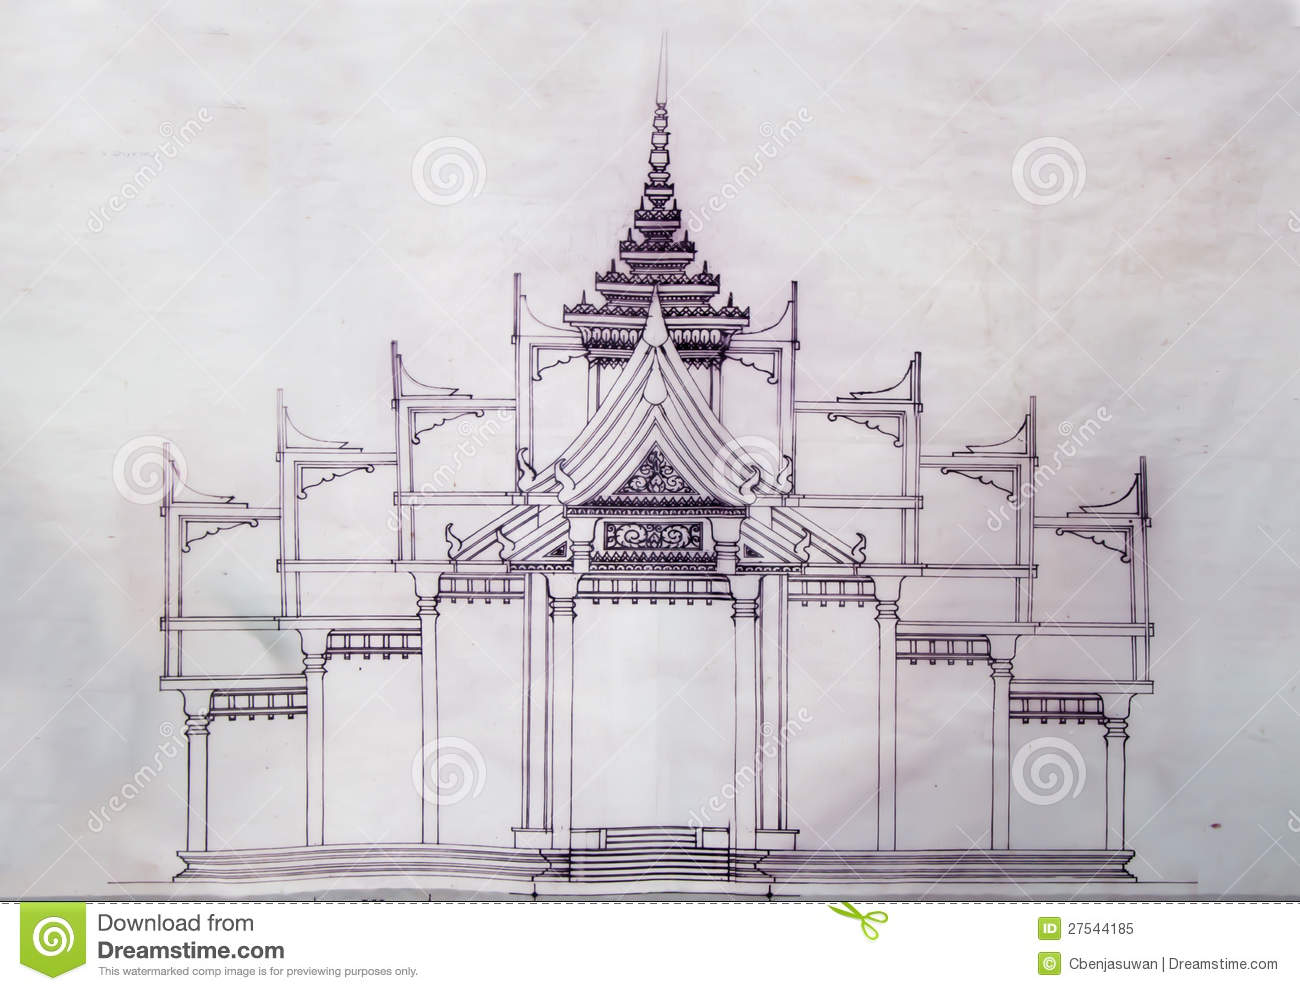 Blueprint church of temple stock image image of style 27544185 blueprint church of temple malvernweather Images